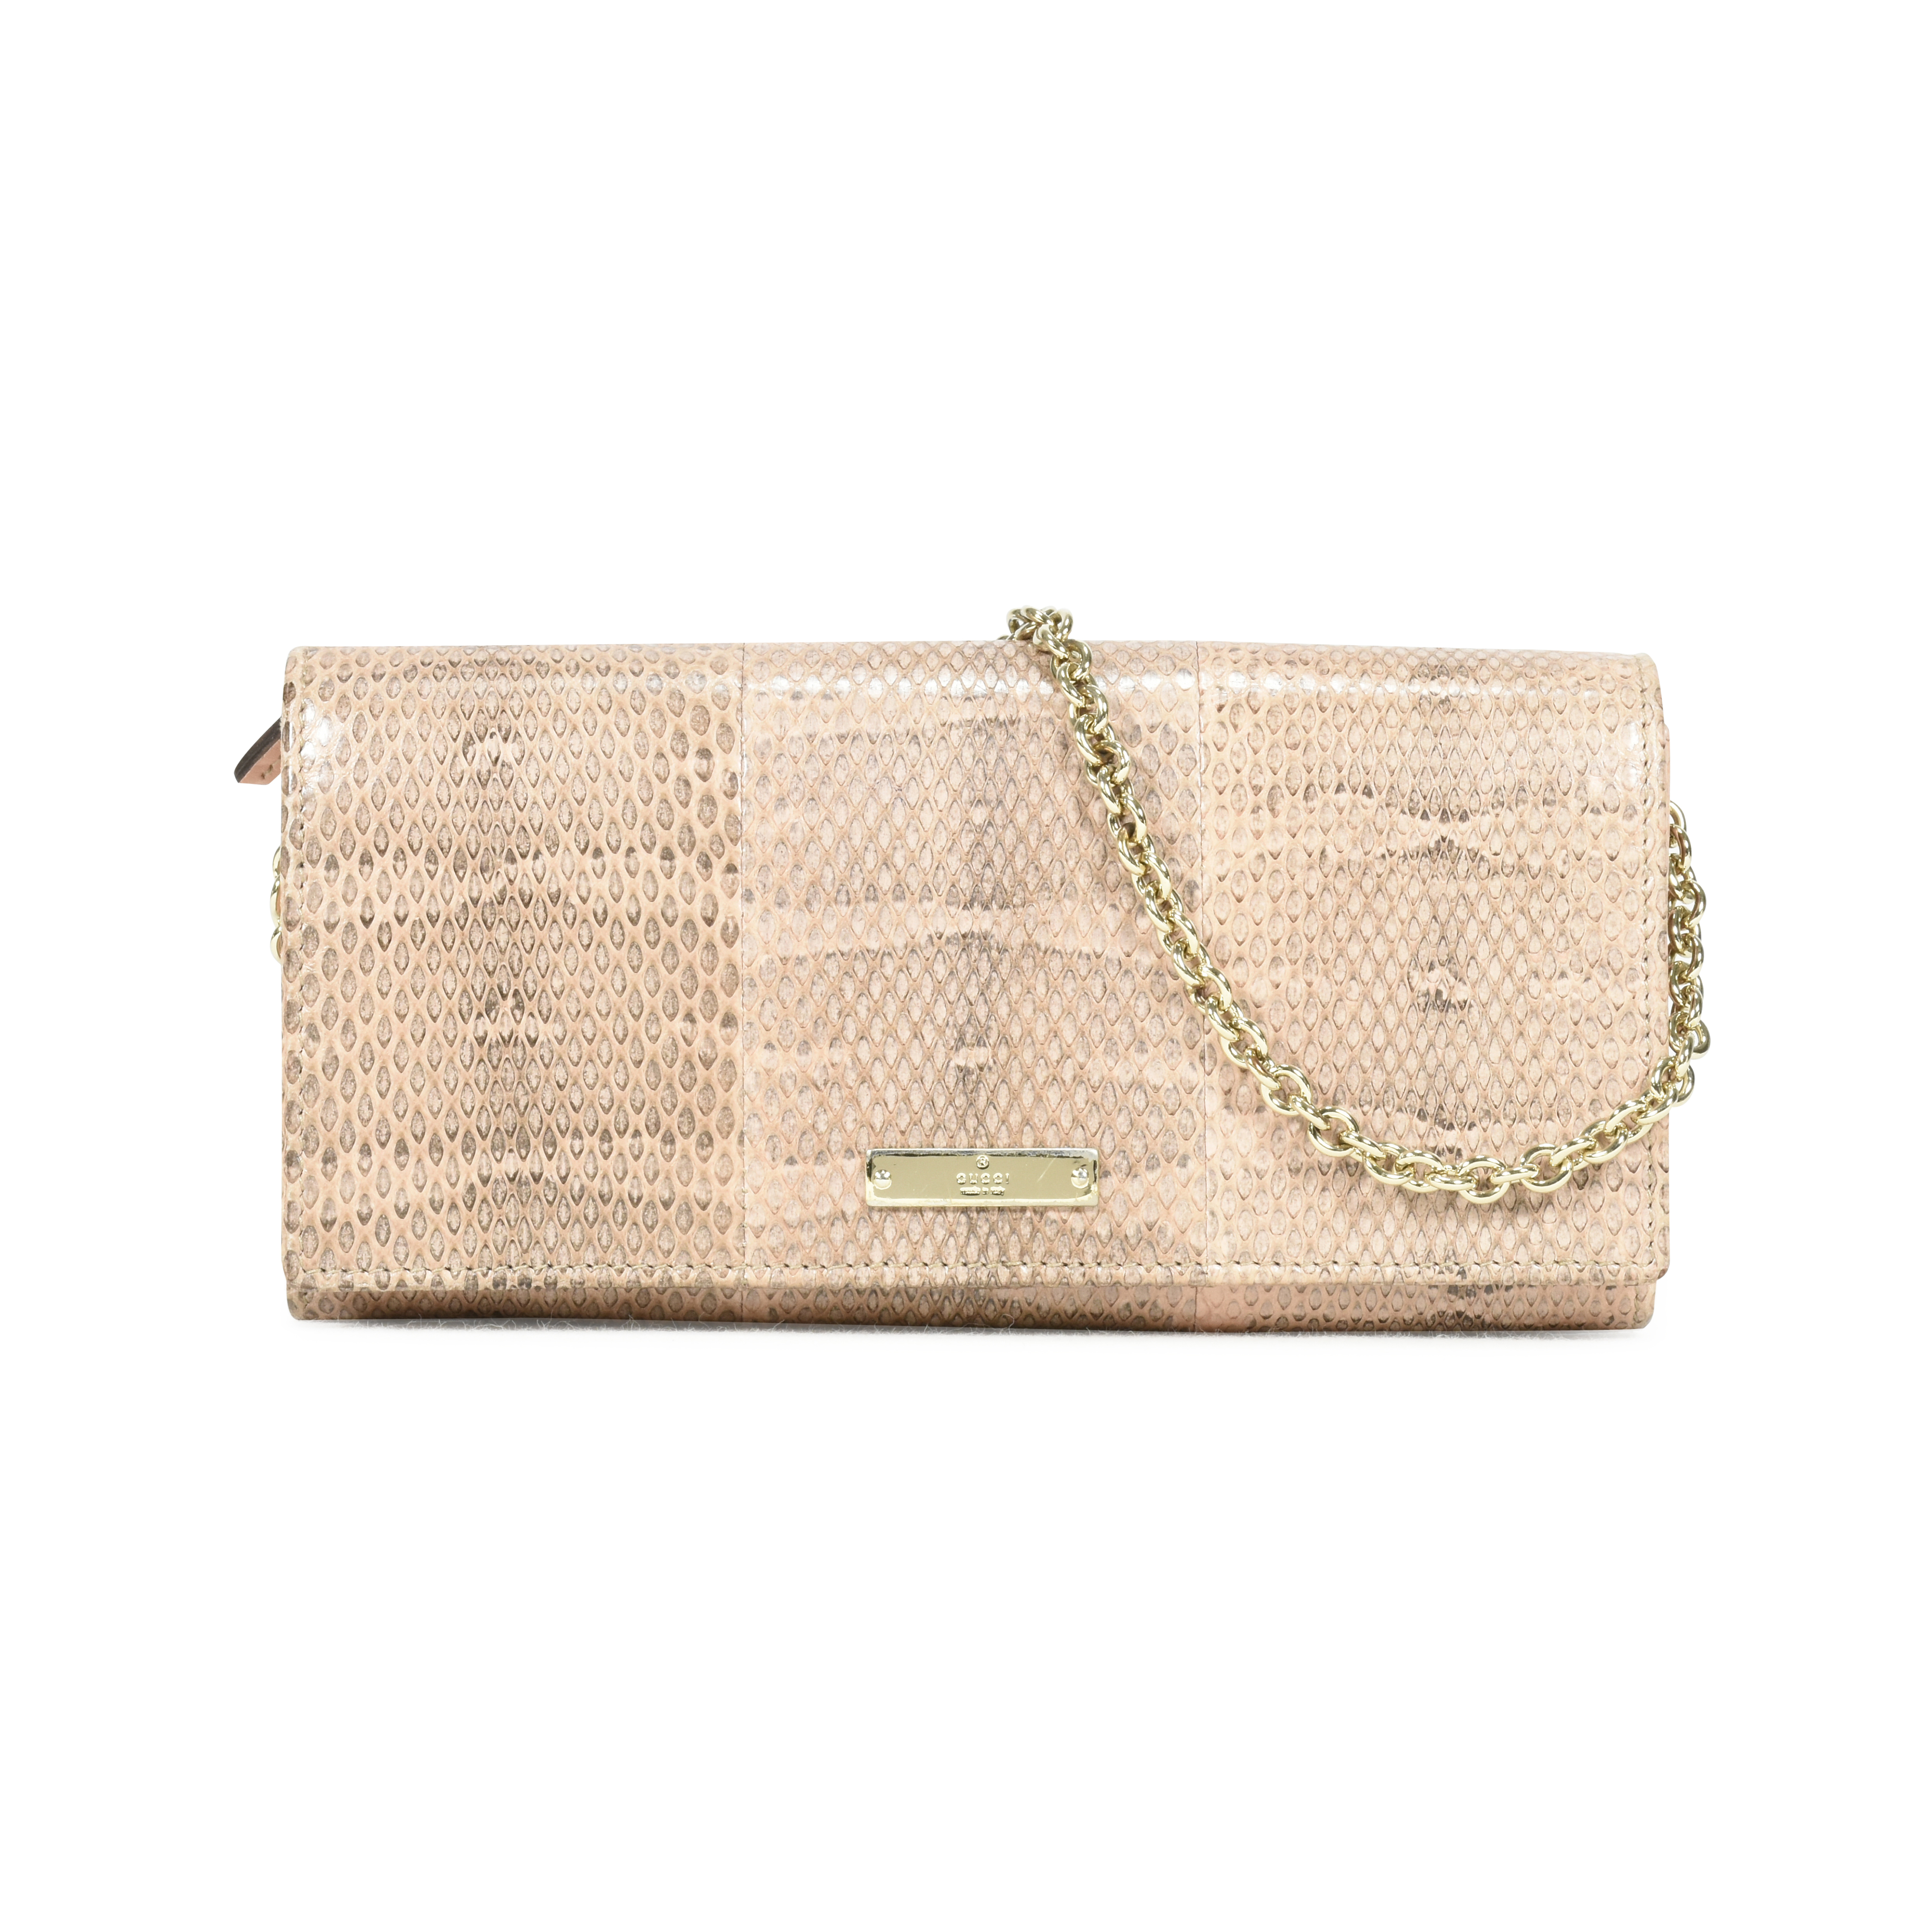 b0aca42f3b4 Authentic Second Hand Gucci Snakeskin Wallet on Chain Clutch  (PSS-139-00028)